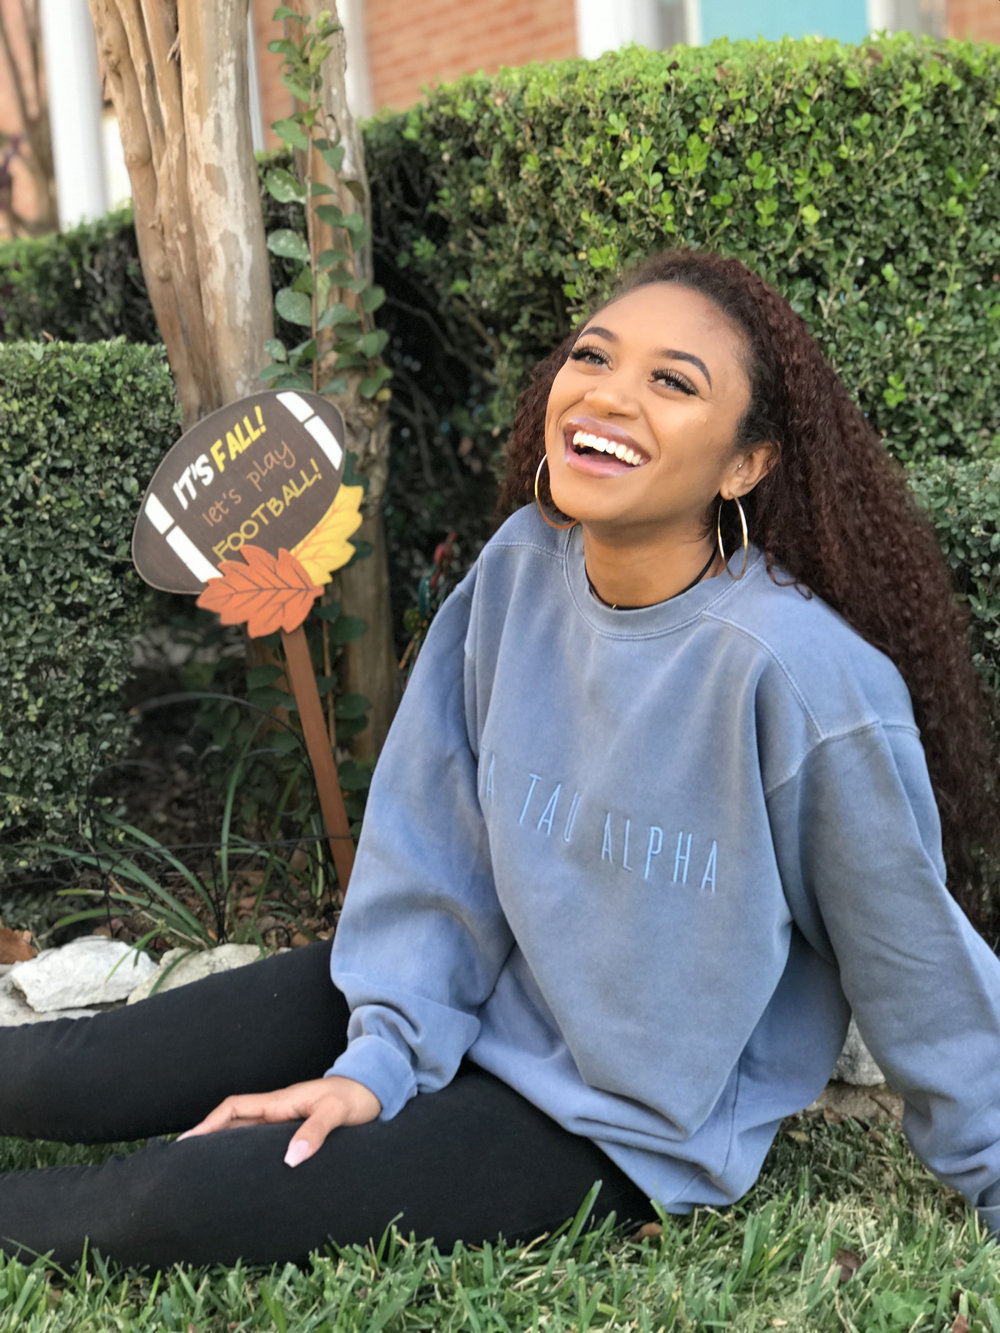 2. Comfort Colors Crewneck Sweatshirt - The ideal oversized sweatshirt for class that matches any outfit. Perfect to wear with leggings, jeans or sweatpants!